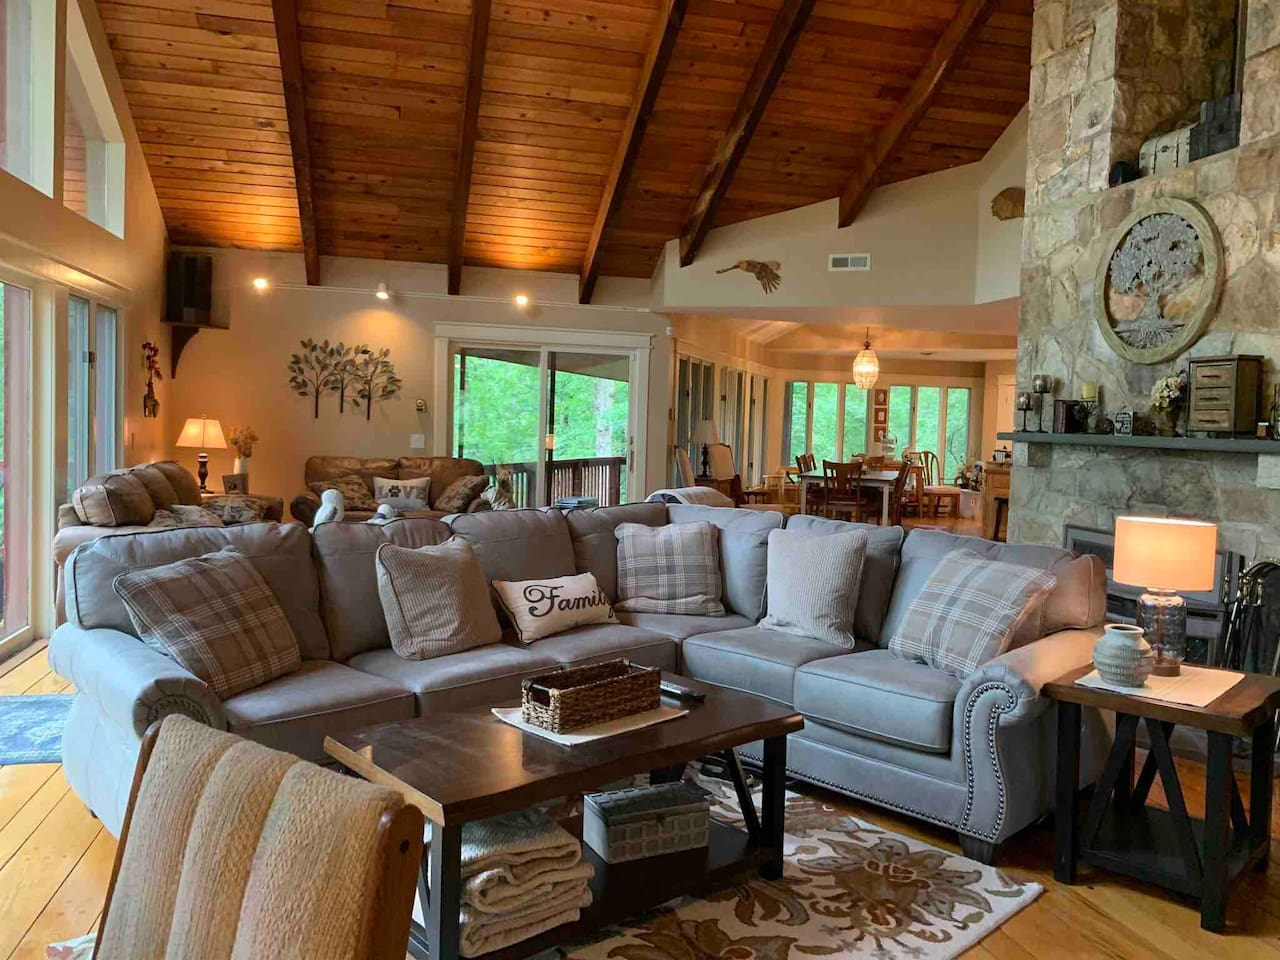 Great room offers two seating areas, a wood stove, a table for 4, and beautiful views.